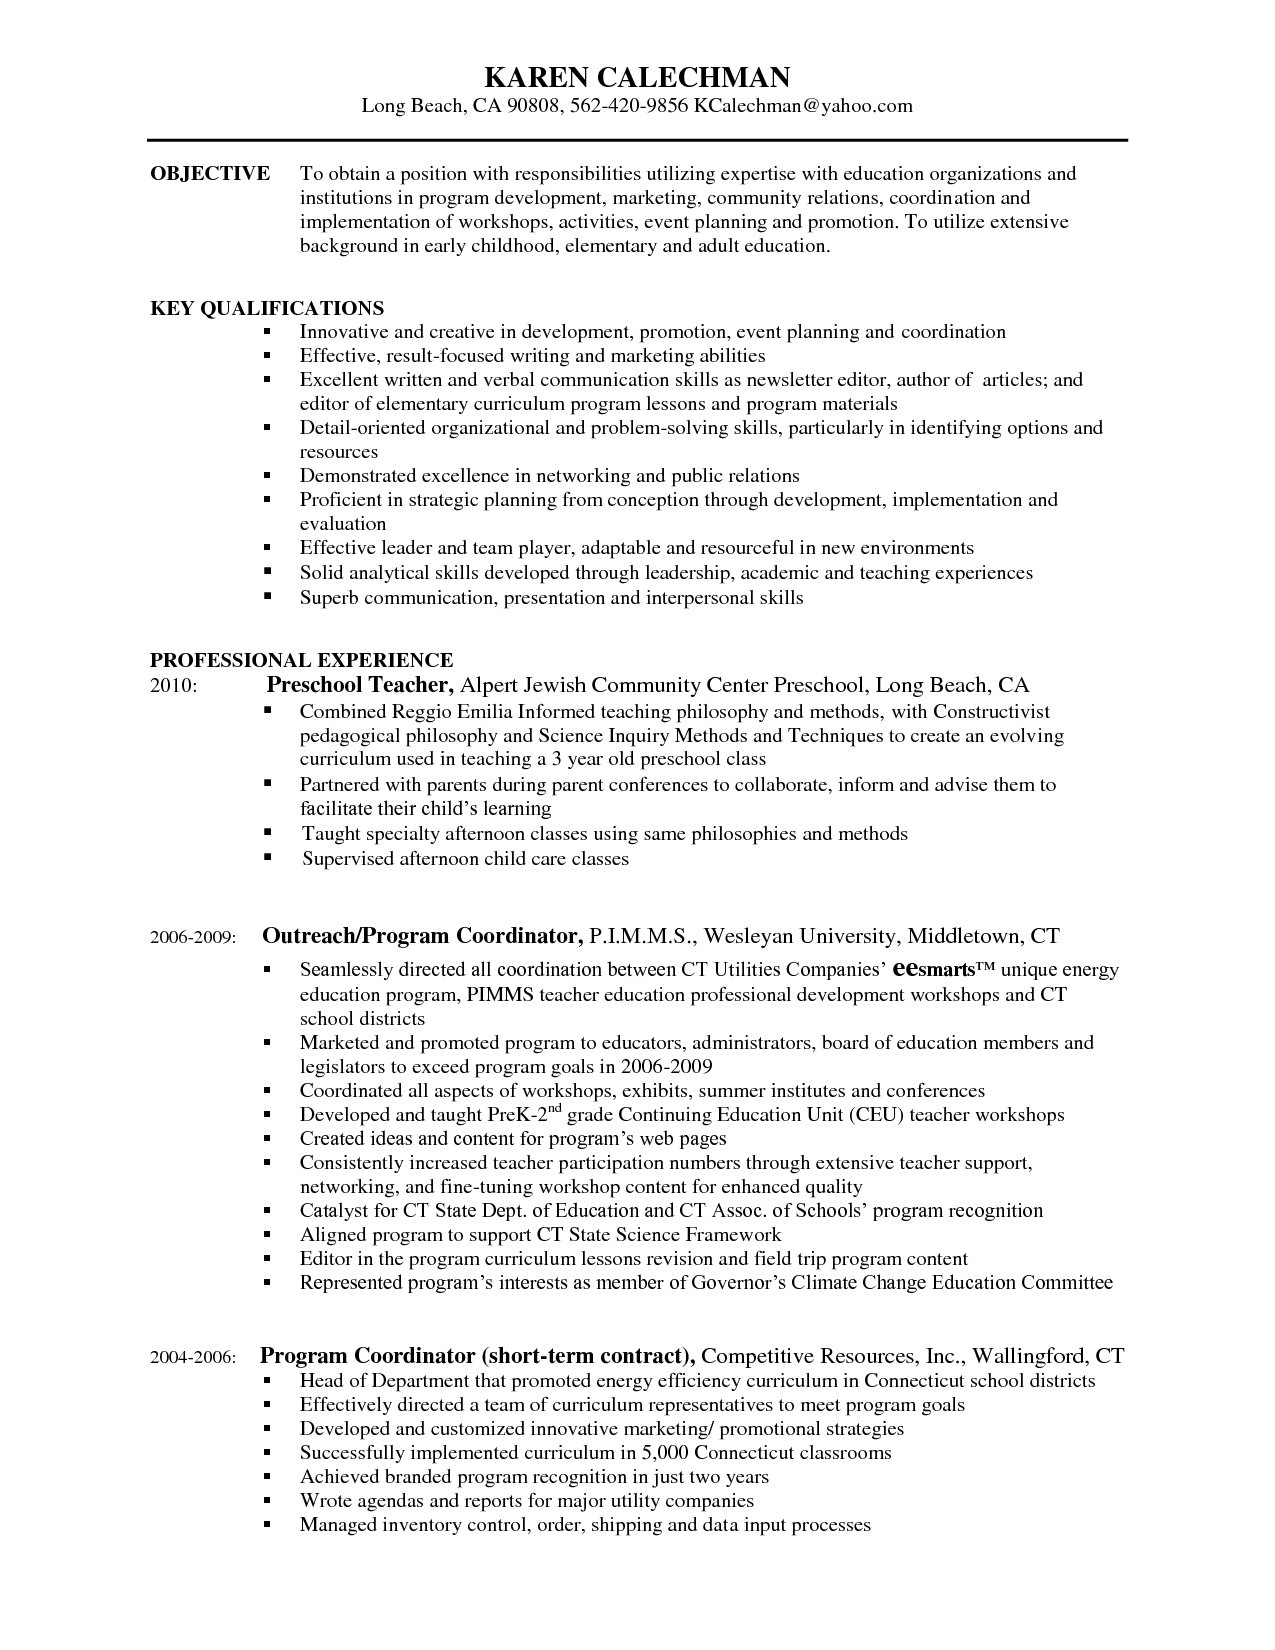 Educational Leader Resume Objective Sample Skills After School